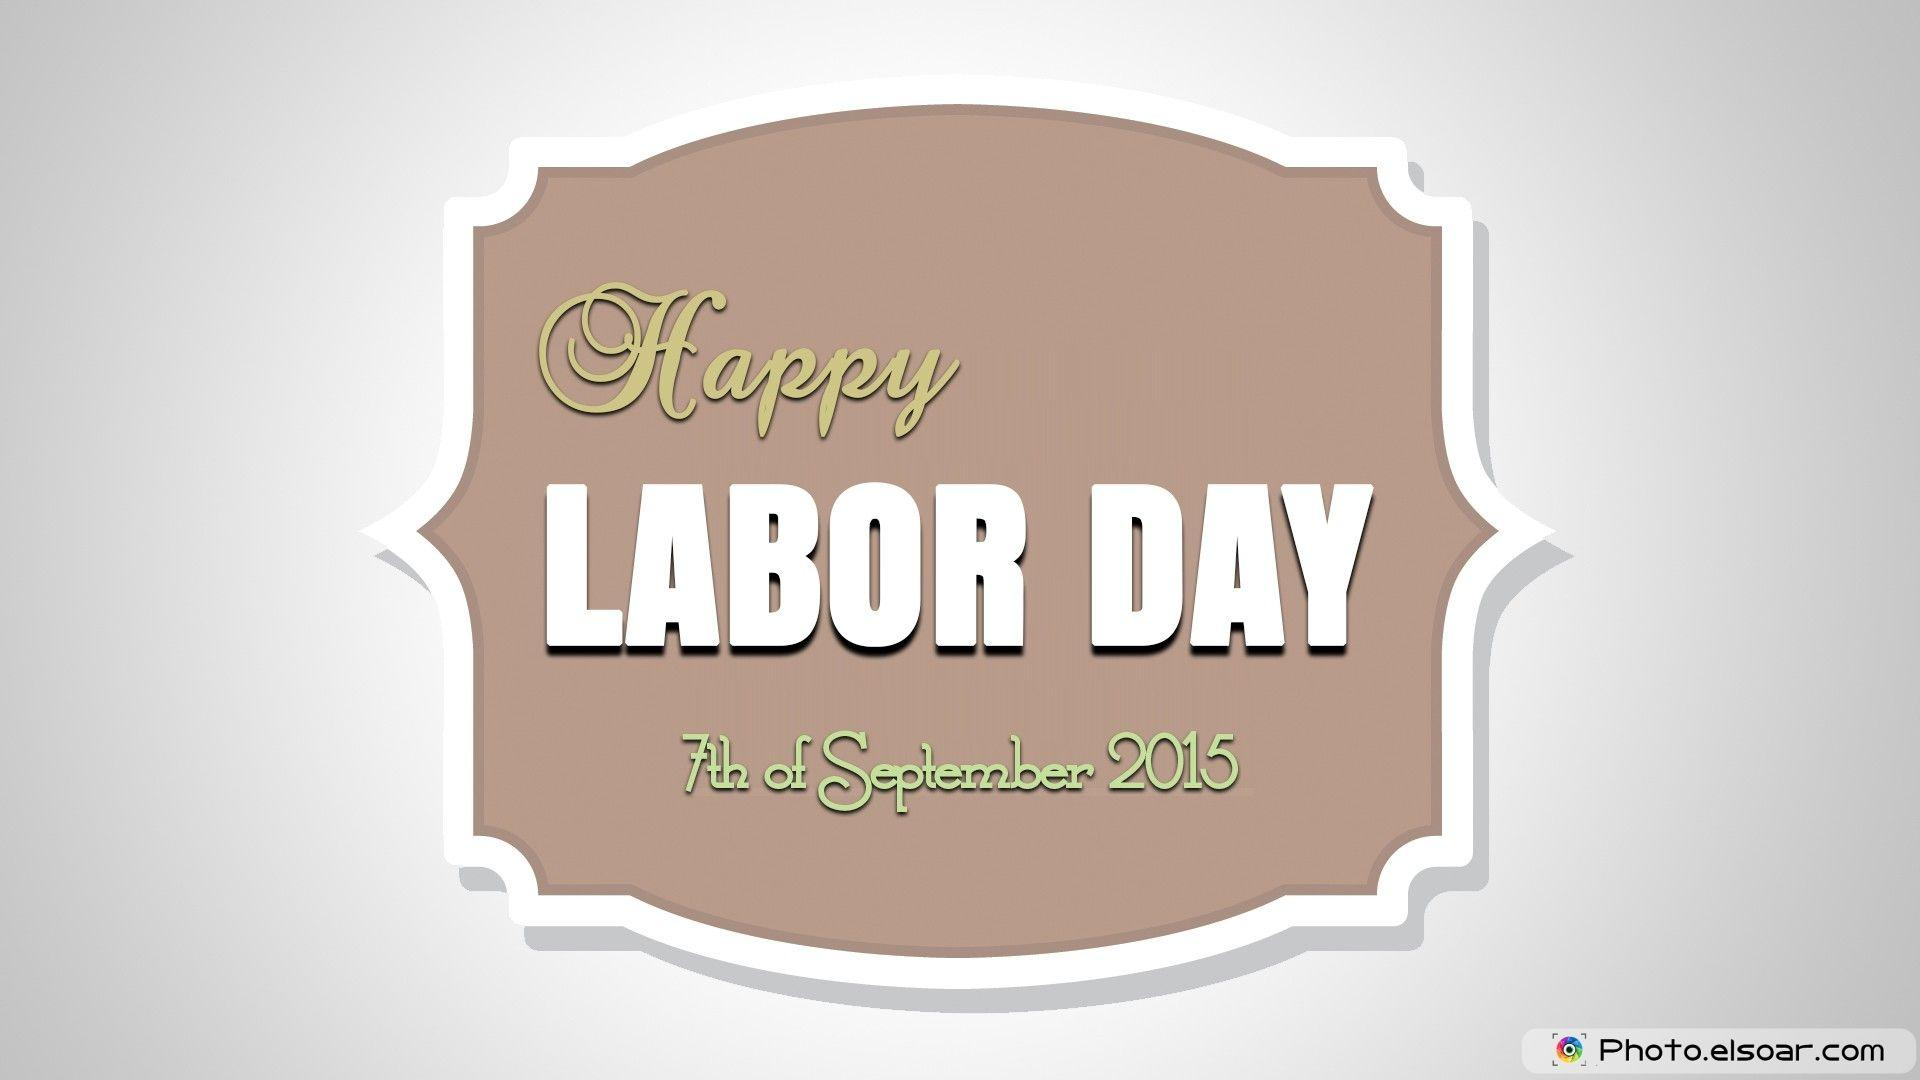 Happy Labor Day 2015! 7th of September – Free HD Wallpaper • Elsoar